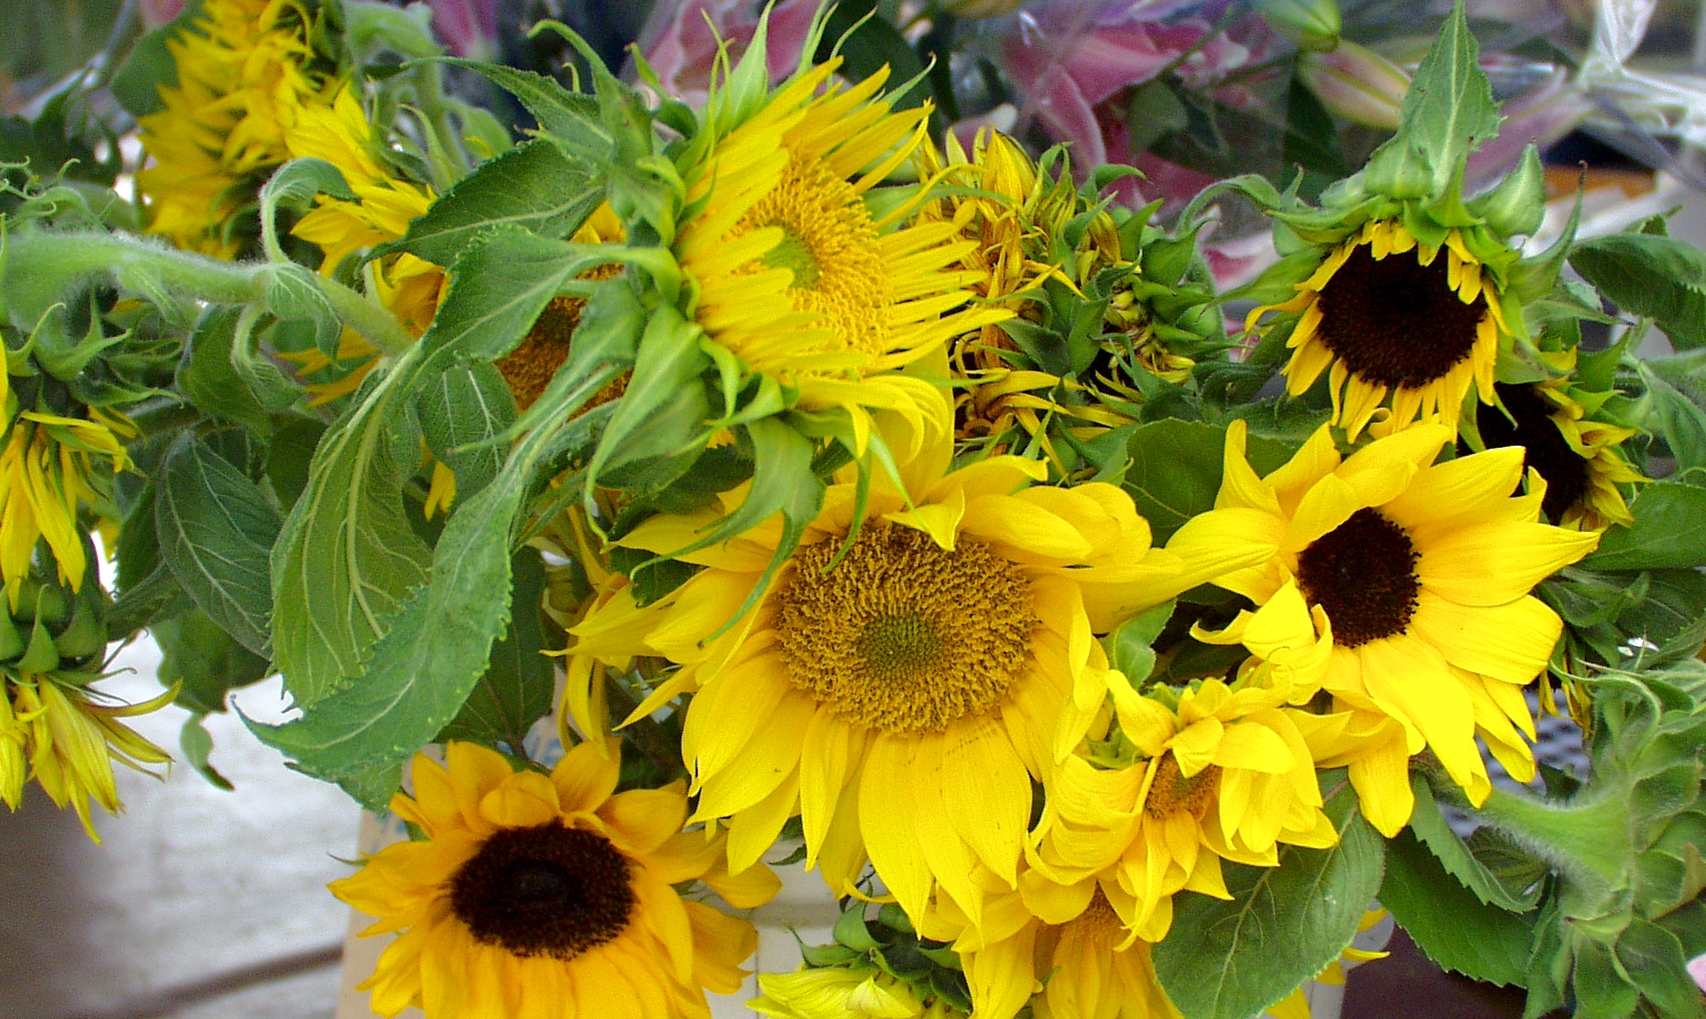 Magnificent Alm Hill sunflowers. Photo copyright 2009 by Zachary D. Lyons.